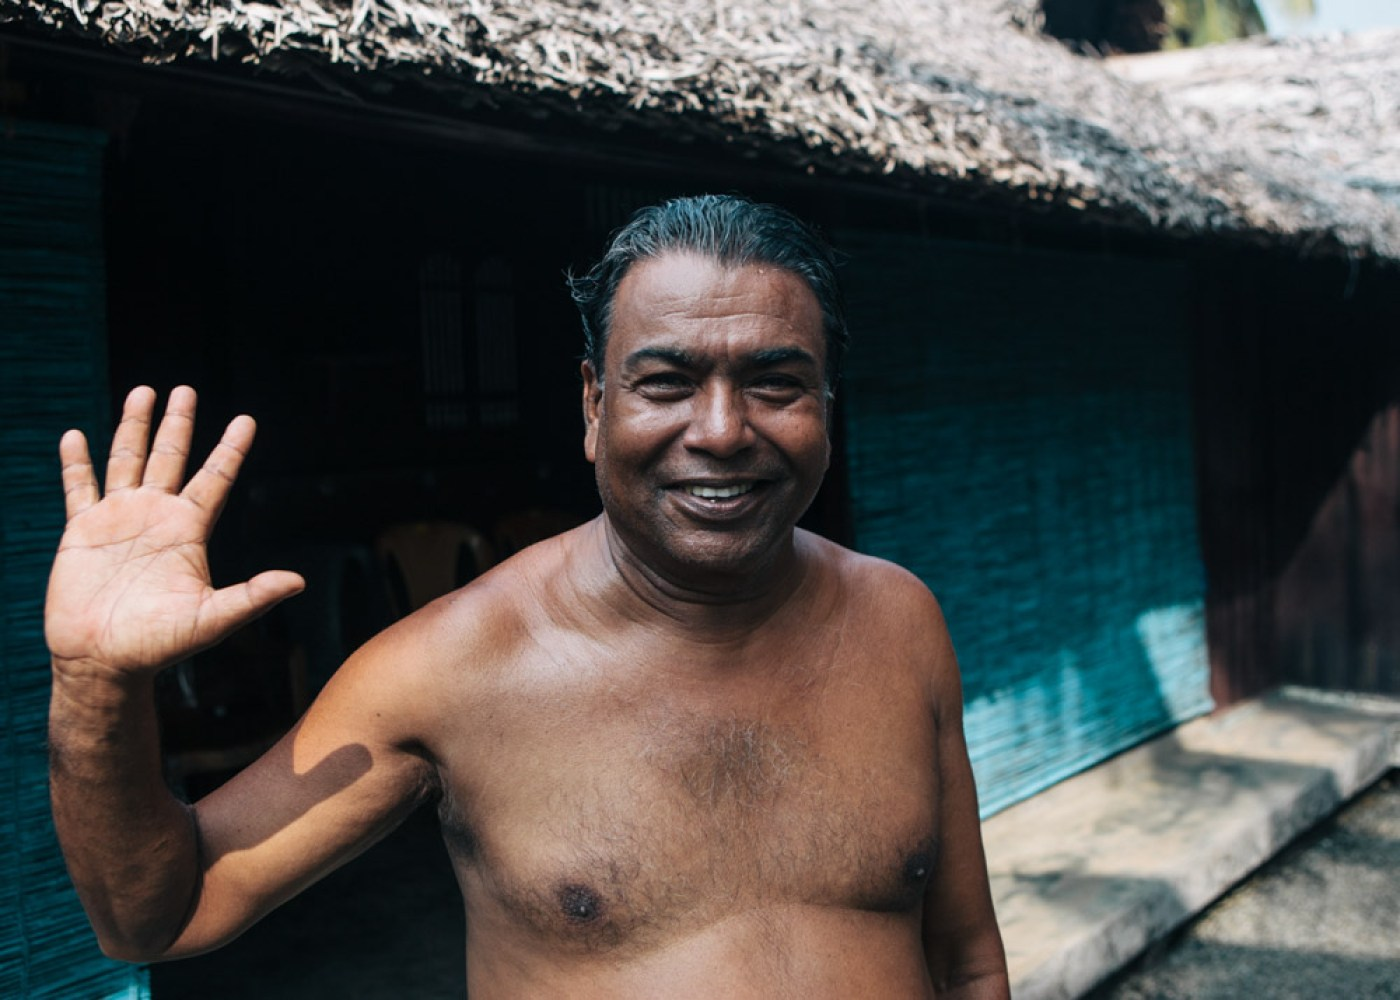 Greenpalms homestay is the perfect backwater experience in Kerala